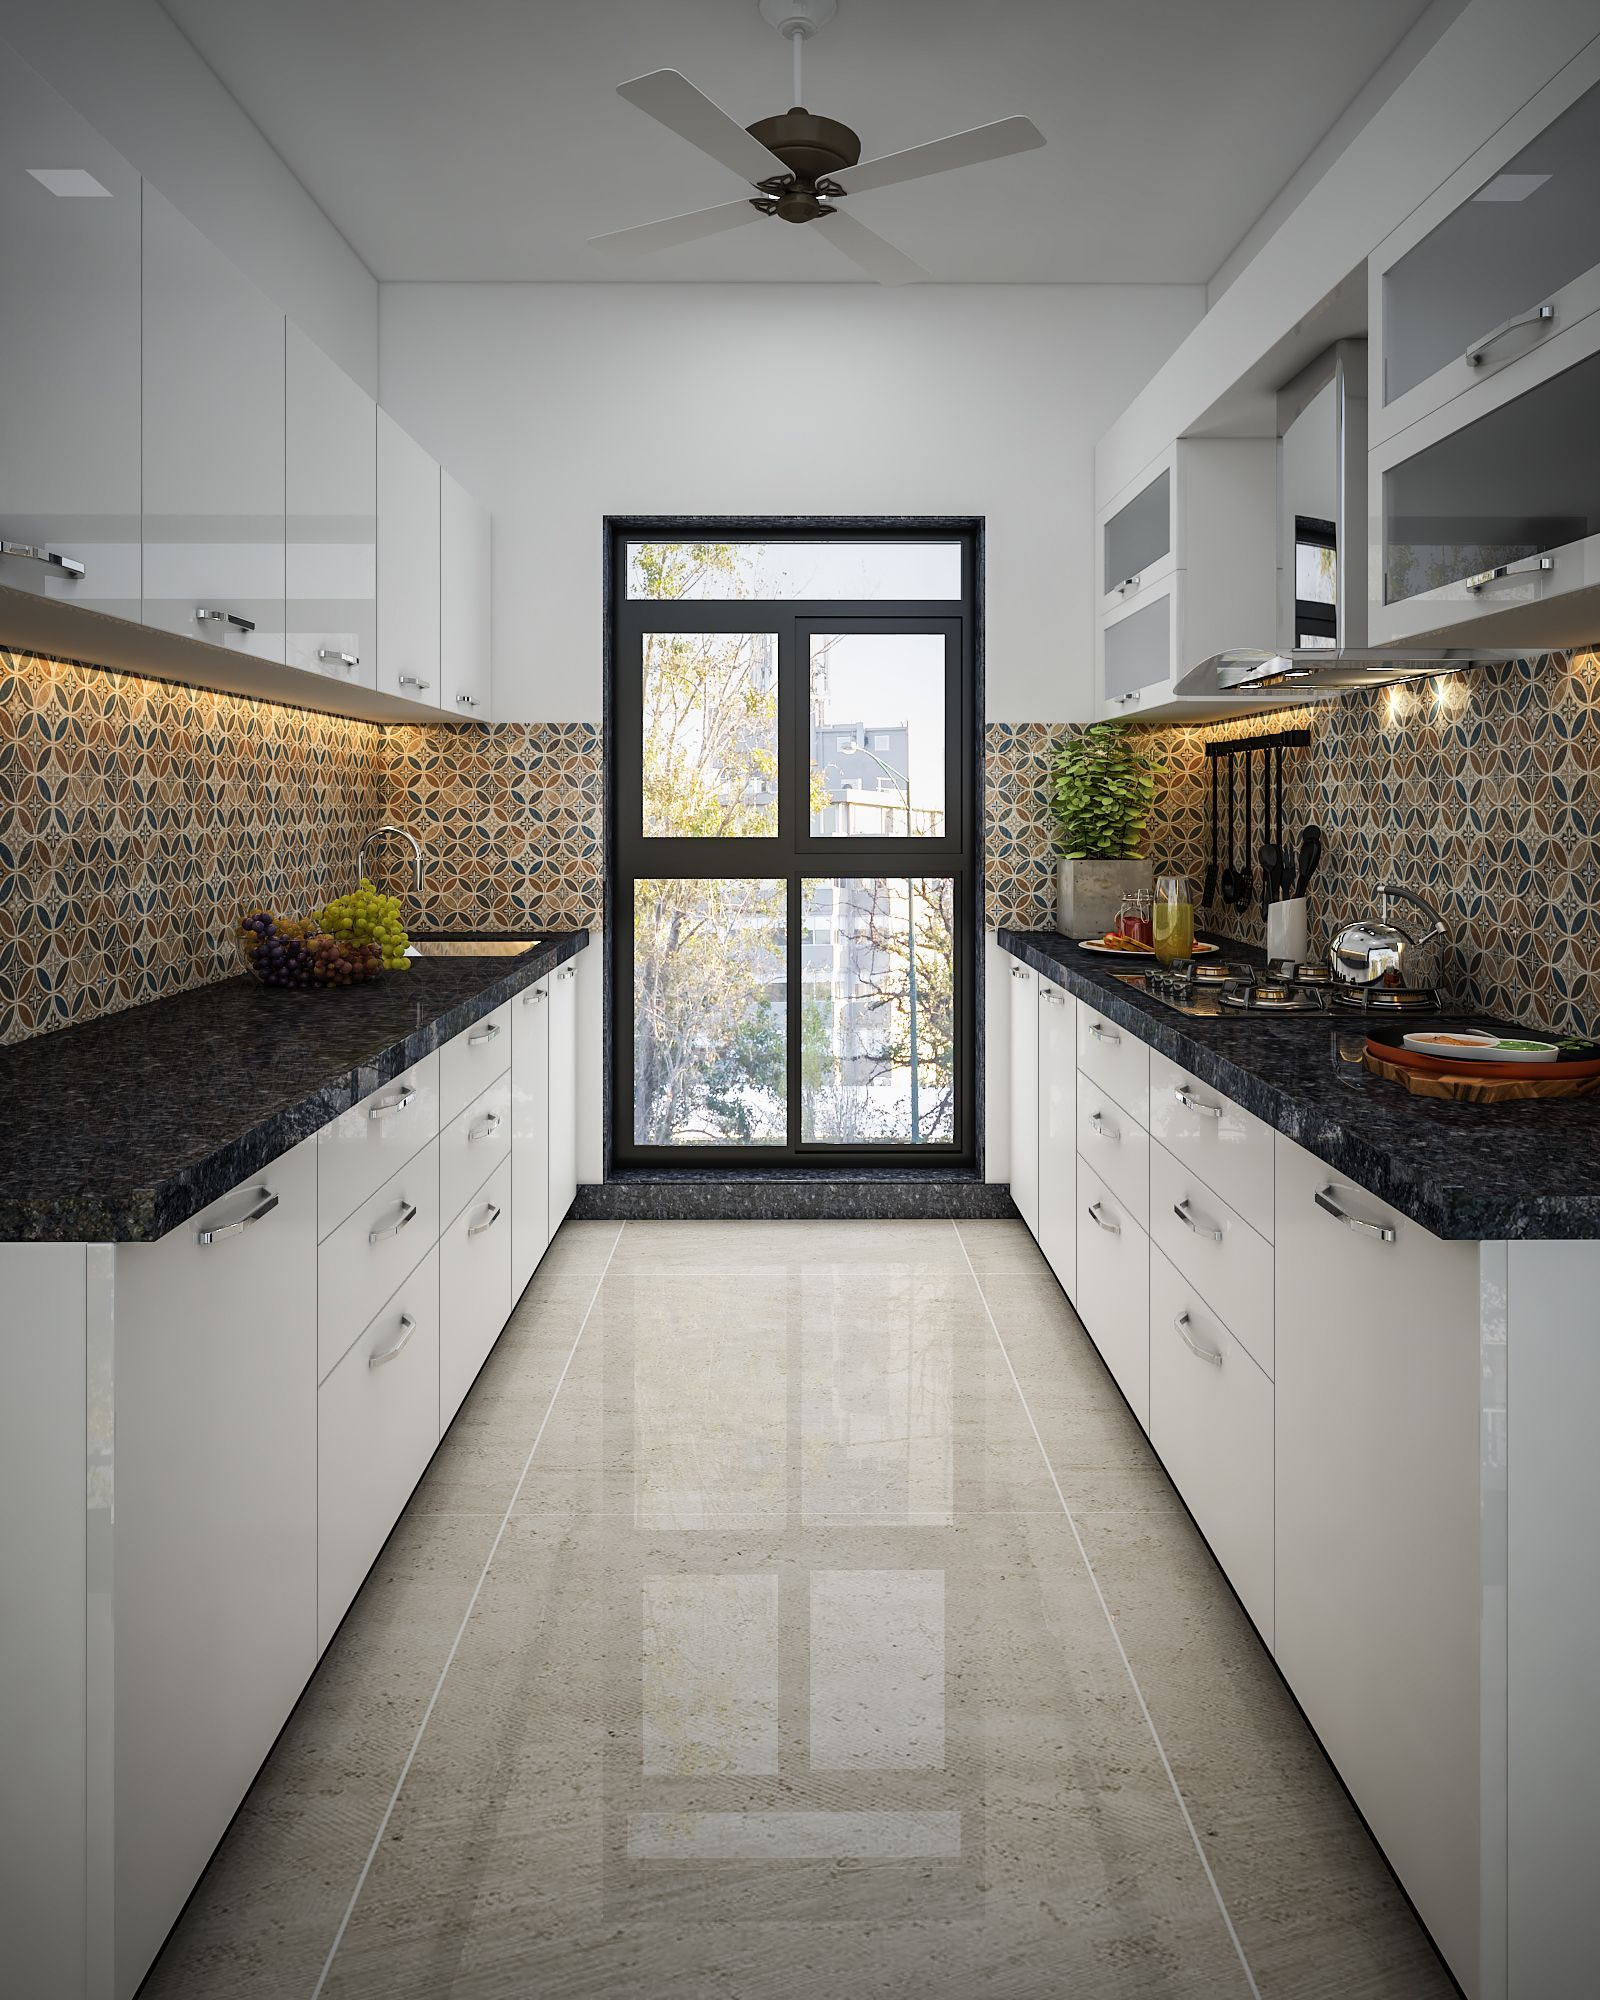 pure white kitchen filled with tranquility in 2020 kitchen design simple kitchen design on kitchen interior parallel id=73239